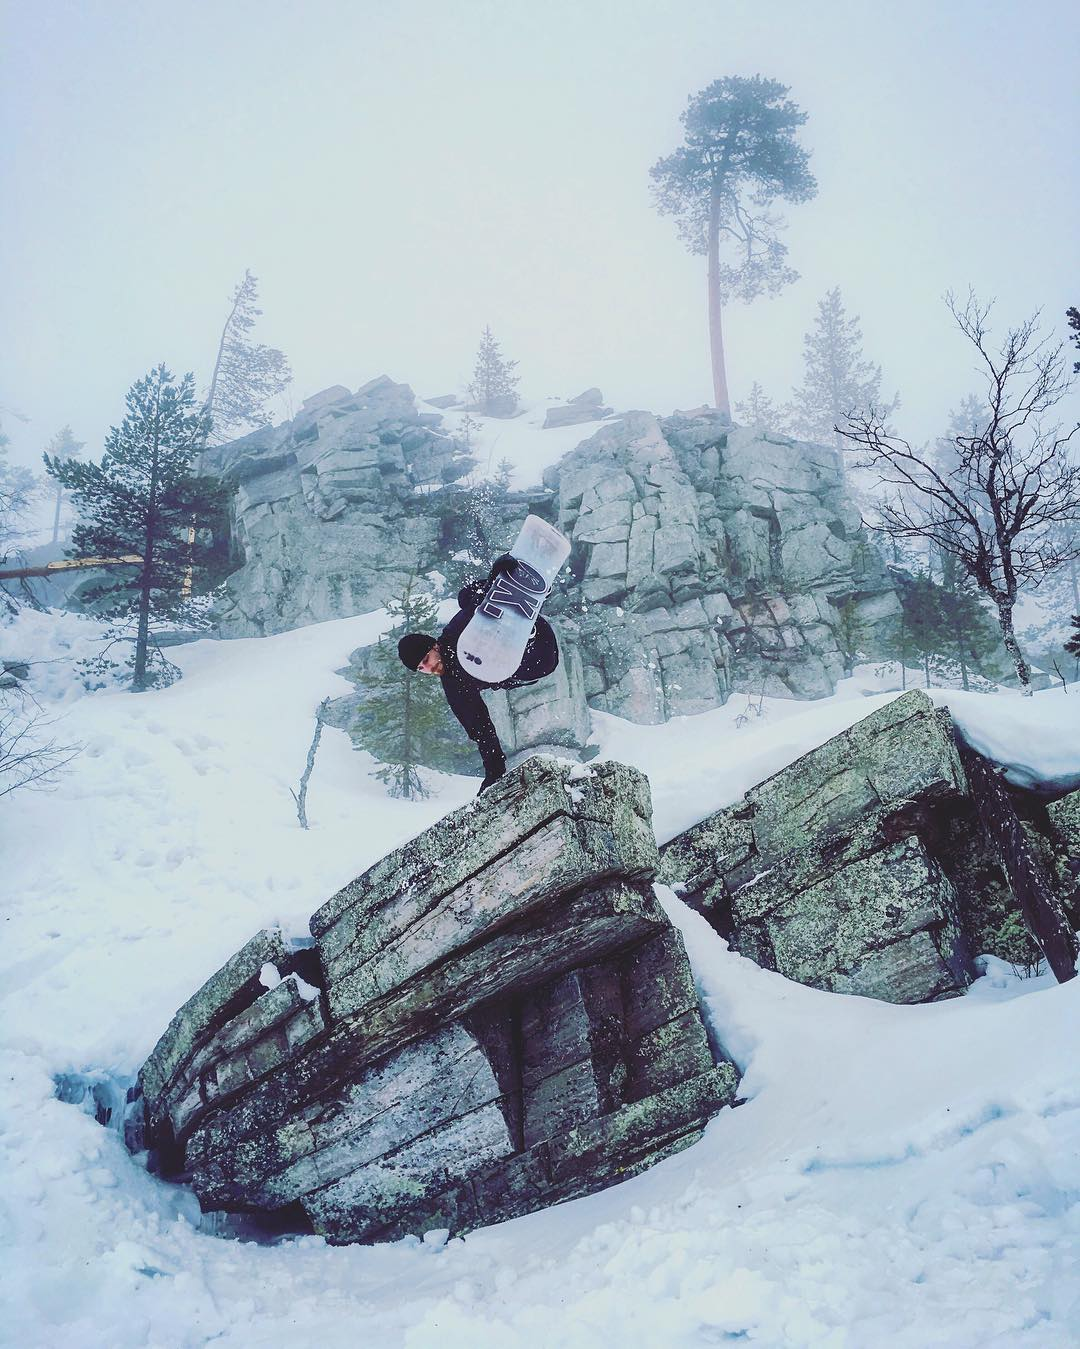 Sick shot of @zakkezakke #Finland